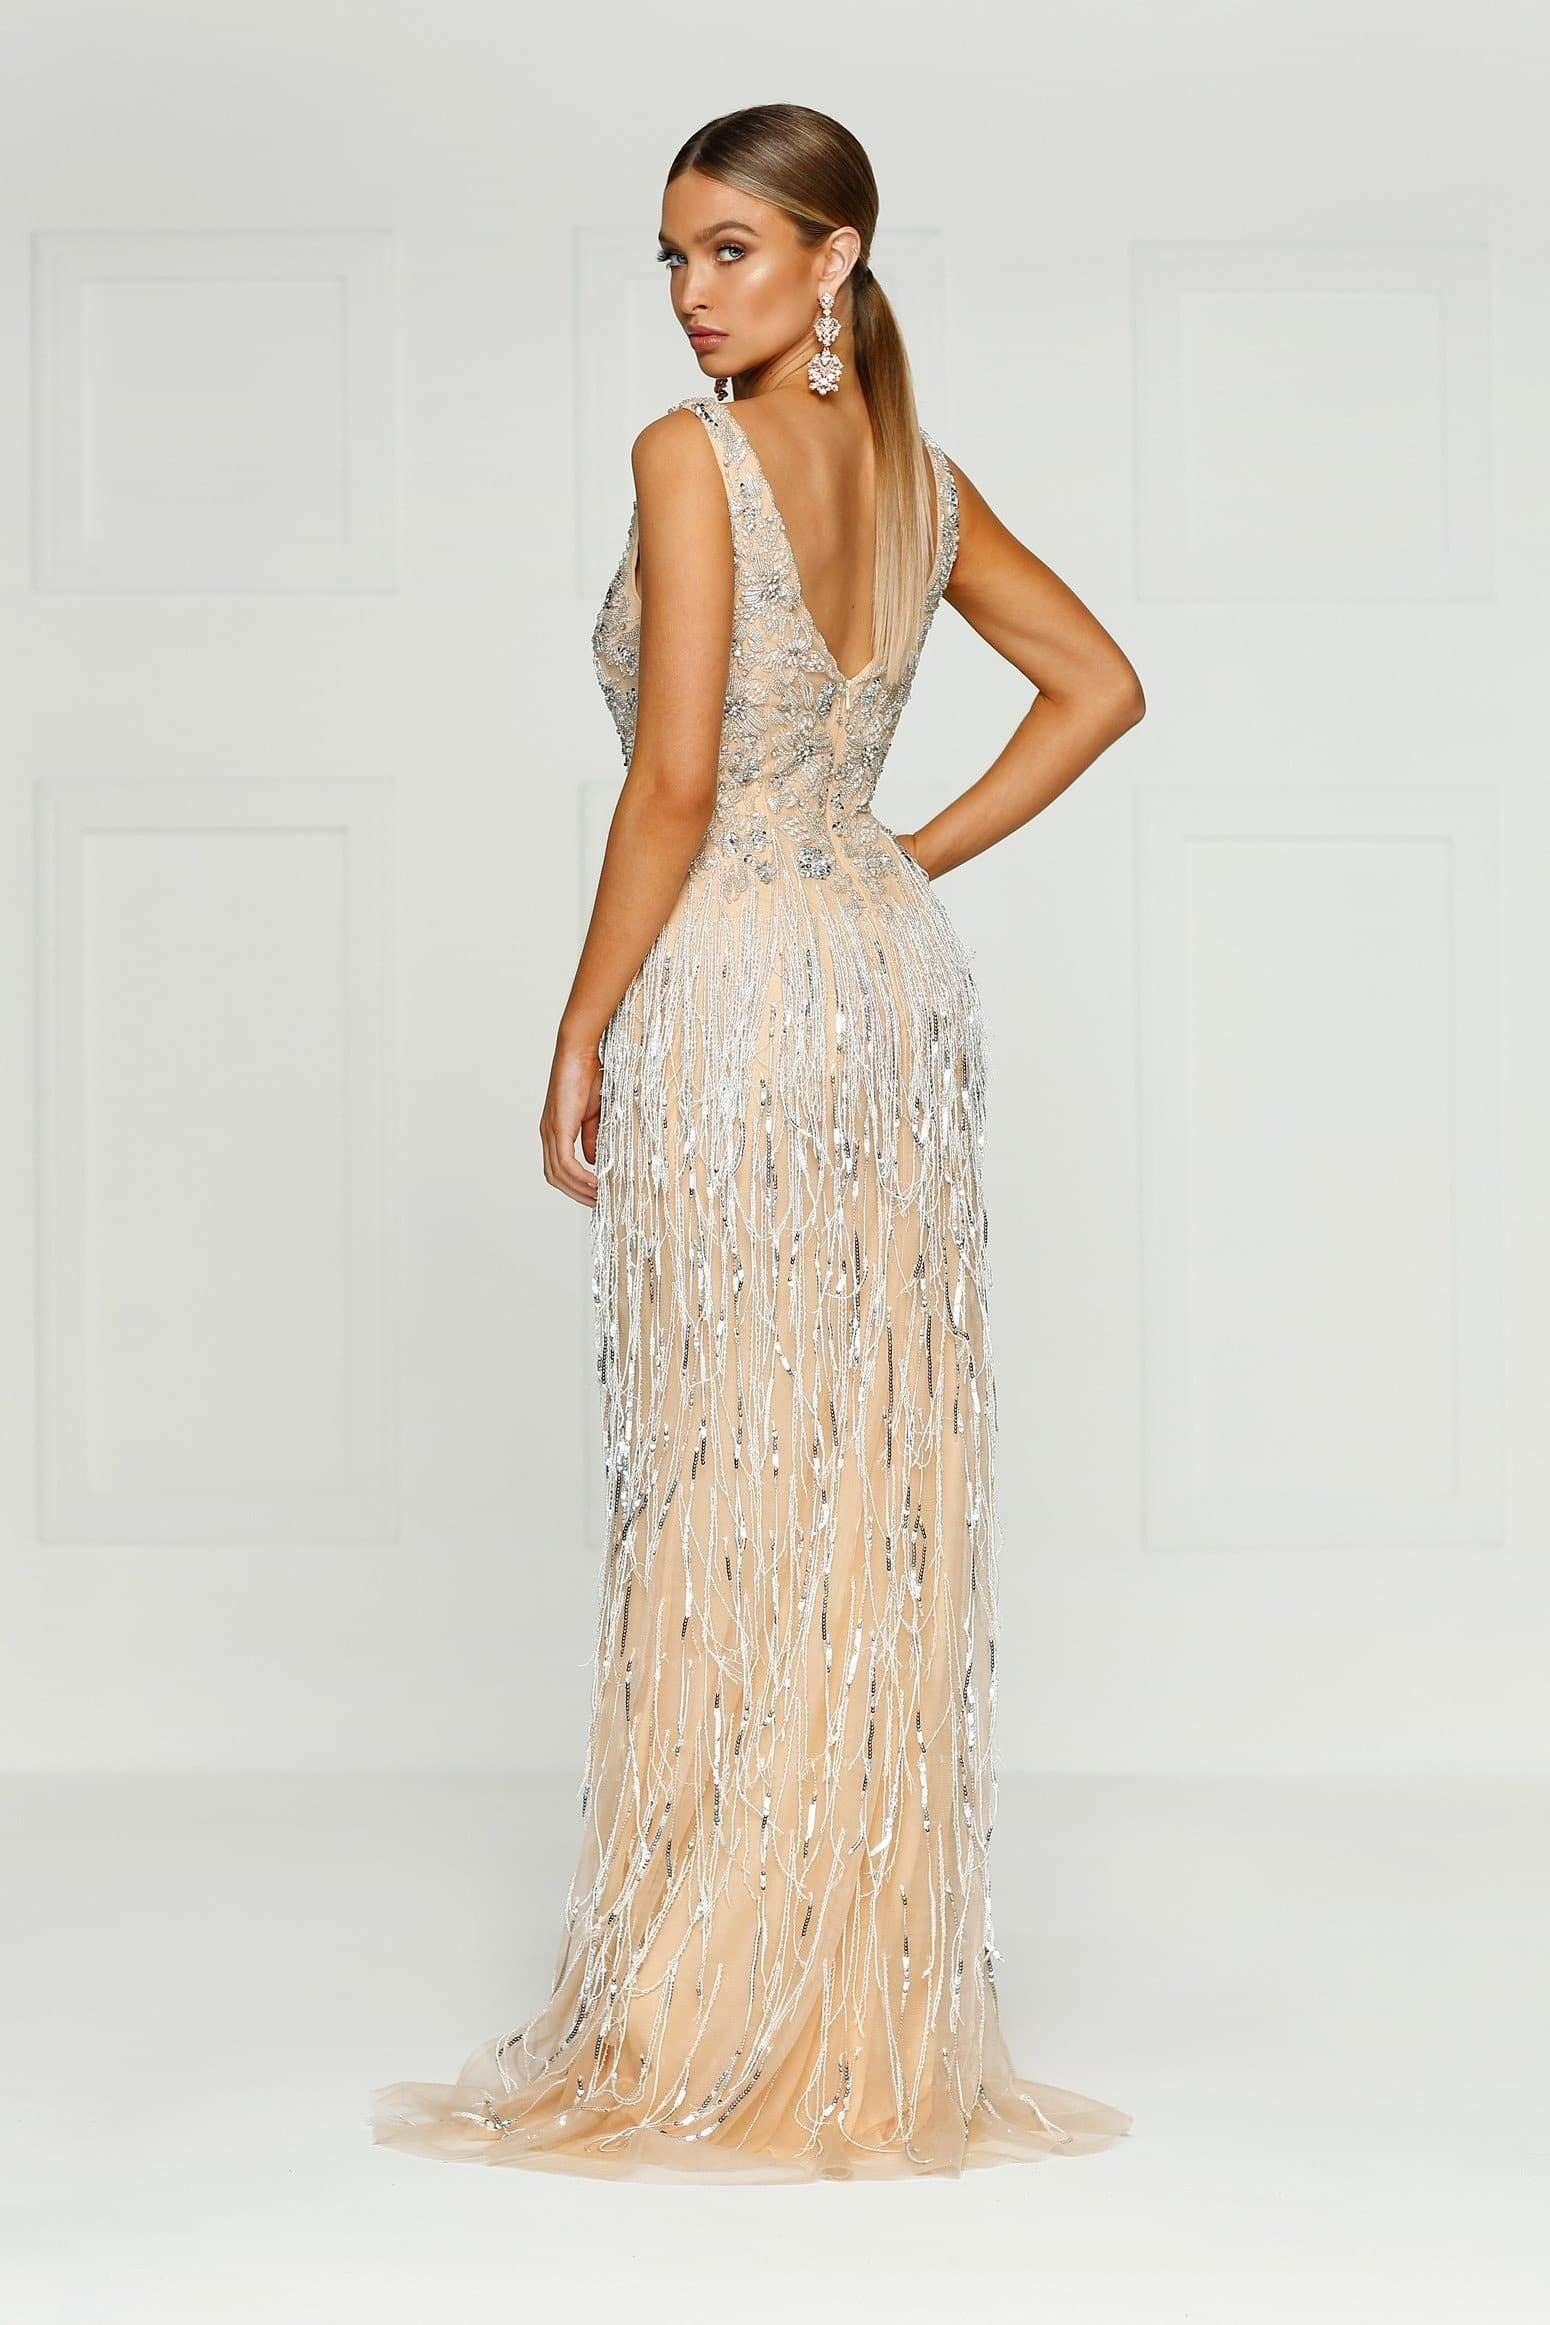 Queen of Jewels Gown - Champagne Mesh V Neck Beaded Mermaid Dress